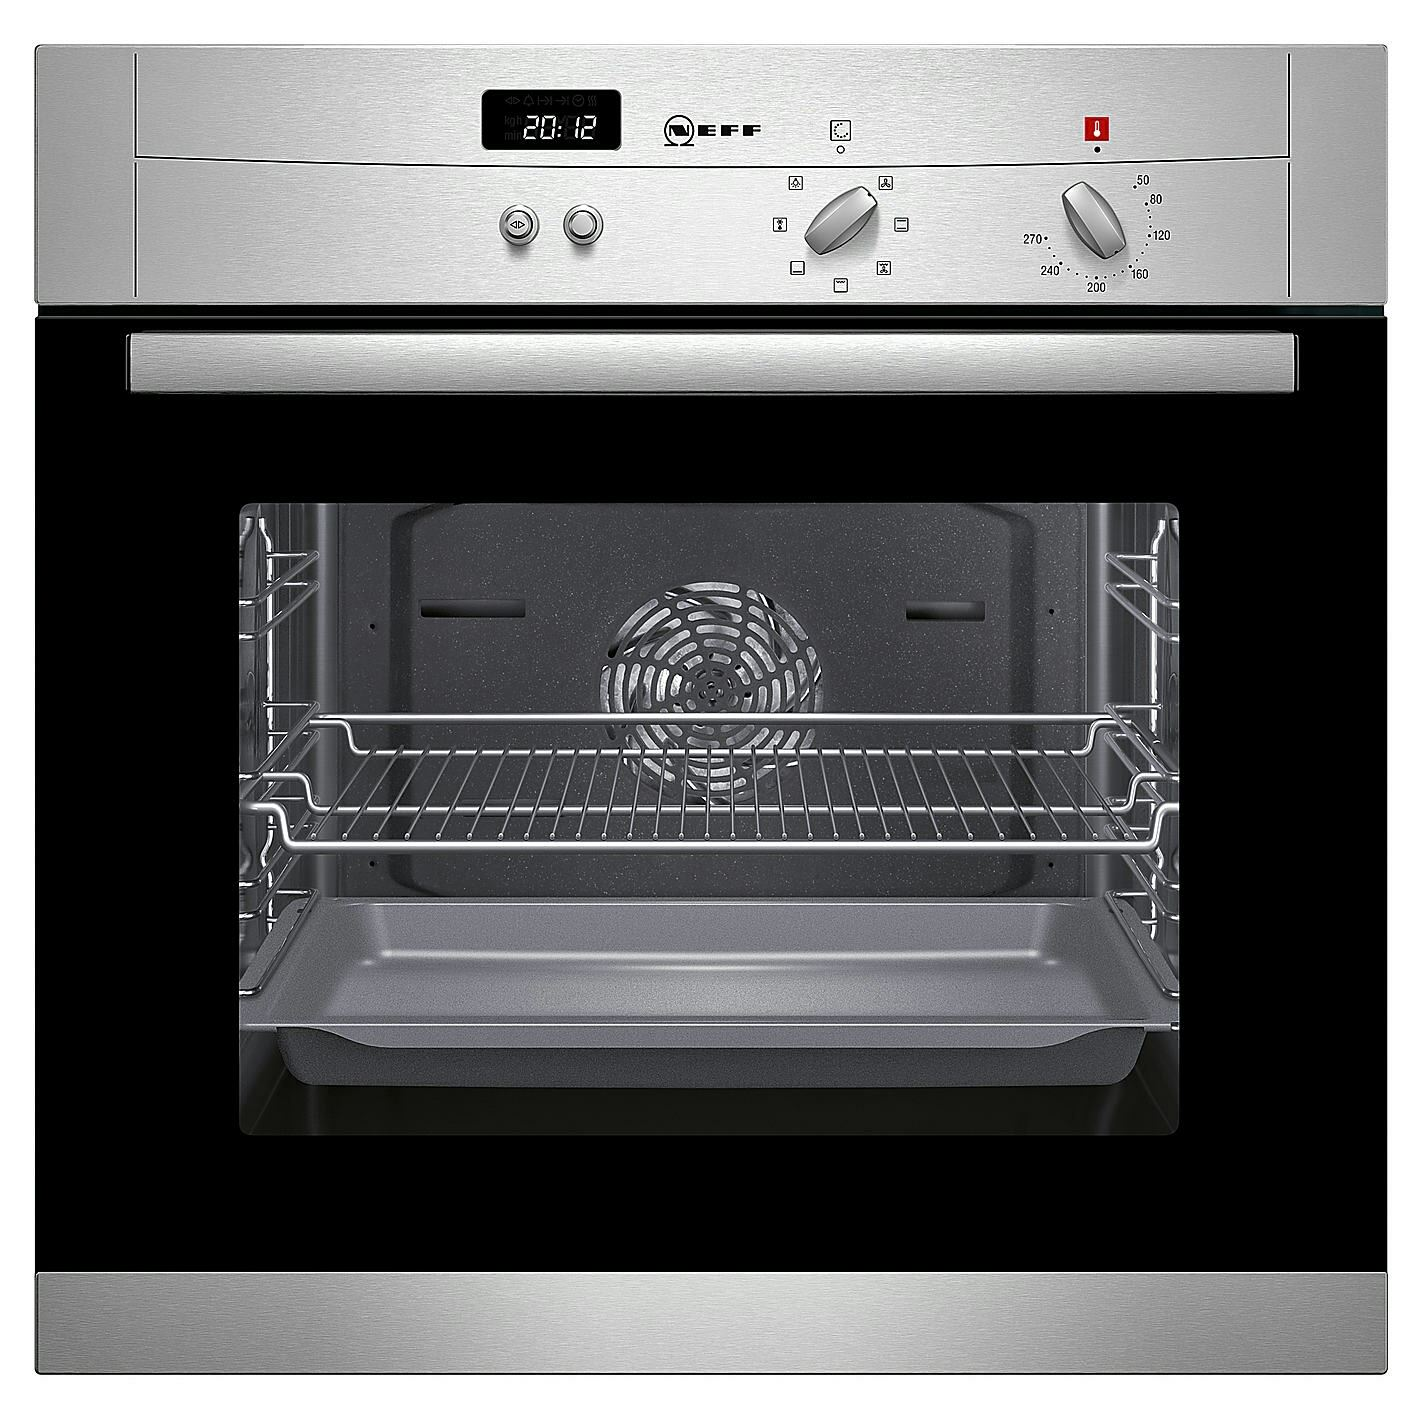 Neff b12s52n3gb single electric oven stainless steel j 3381416 ebay - Neff electric ...